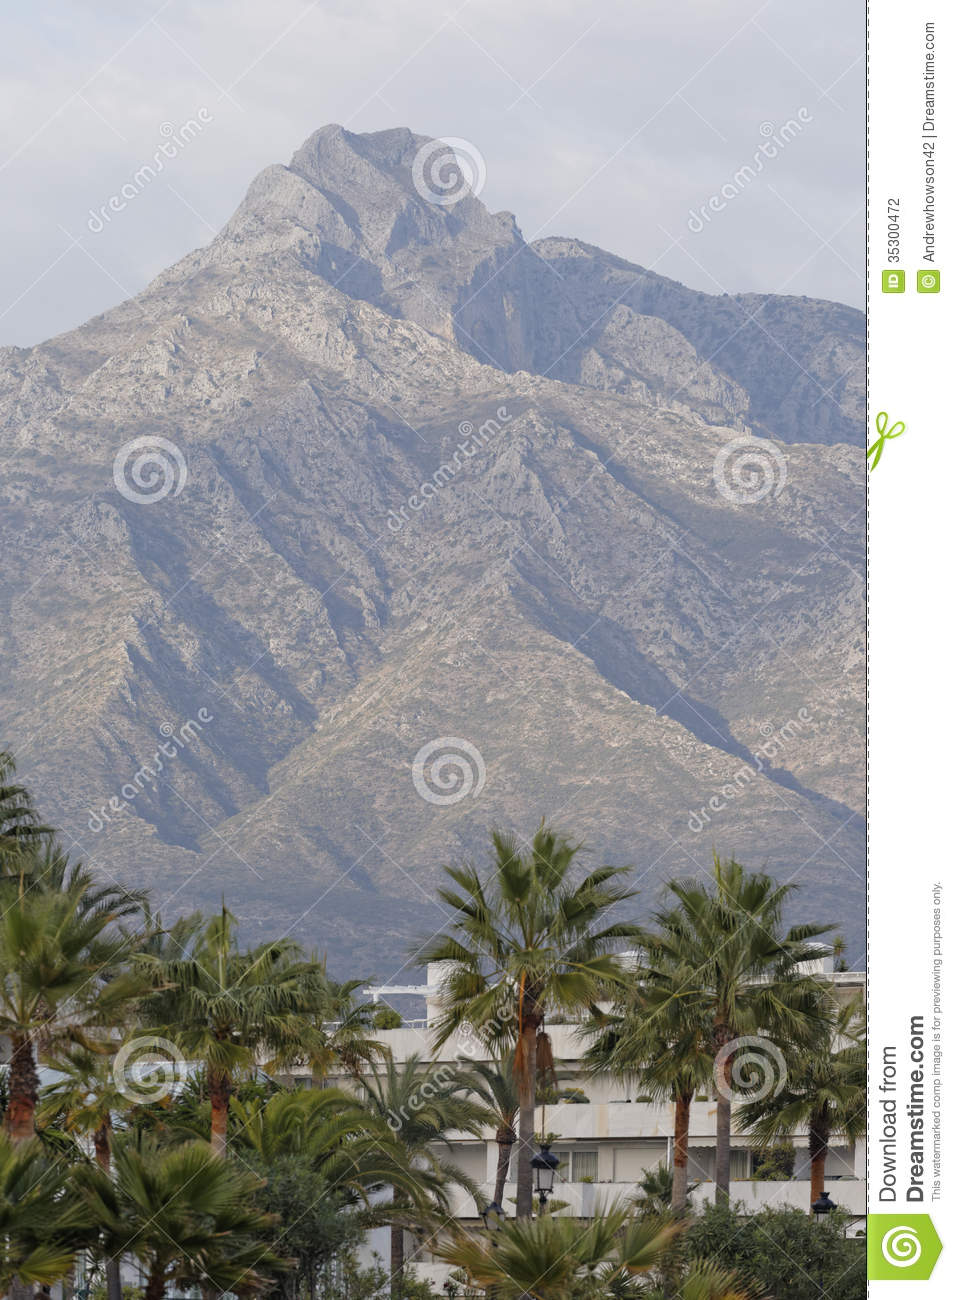 Mountain View Of La Concha Marbella Spain Stock Photography Image 35300472